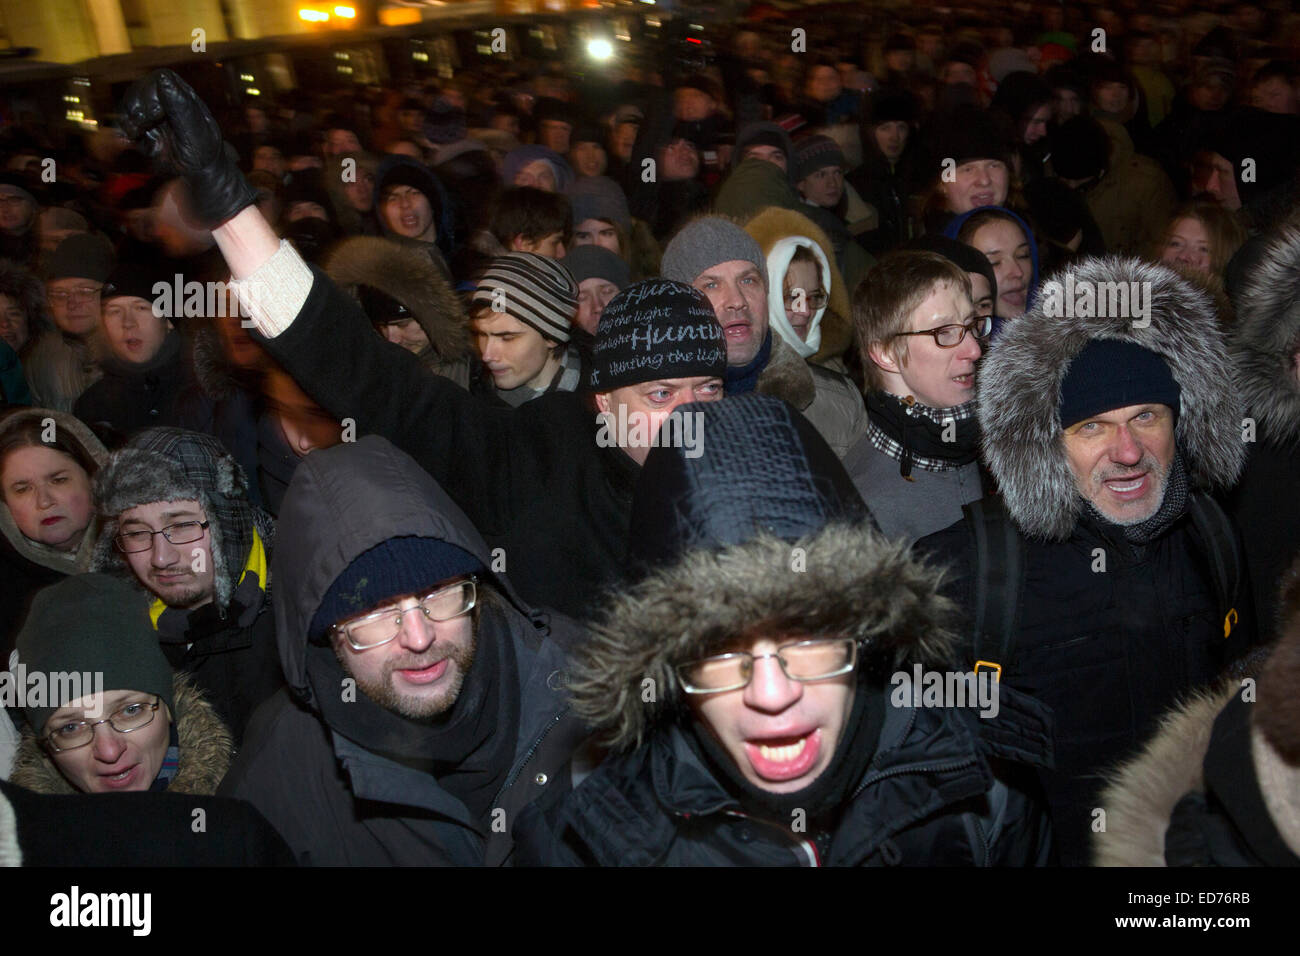 Moscow, Russia. 30 Dec, 2014. Supporters of Russian opposition leader Alexei Navalny hold an unsanctioned rally - Stock Image